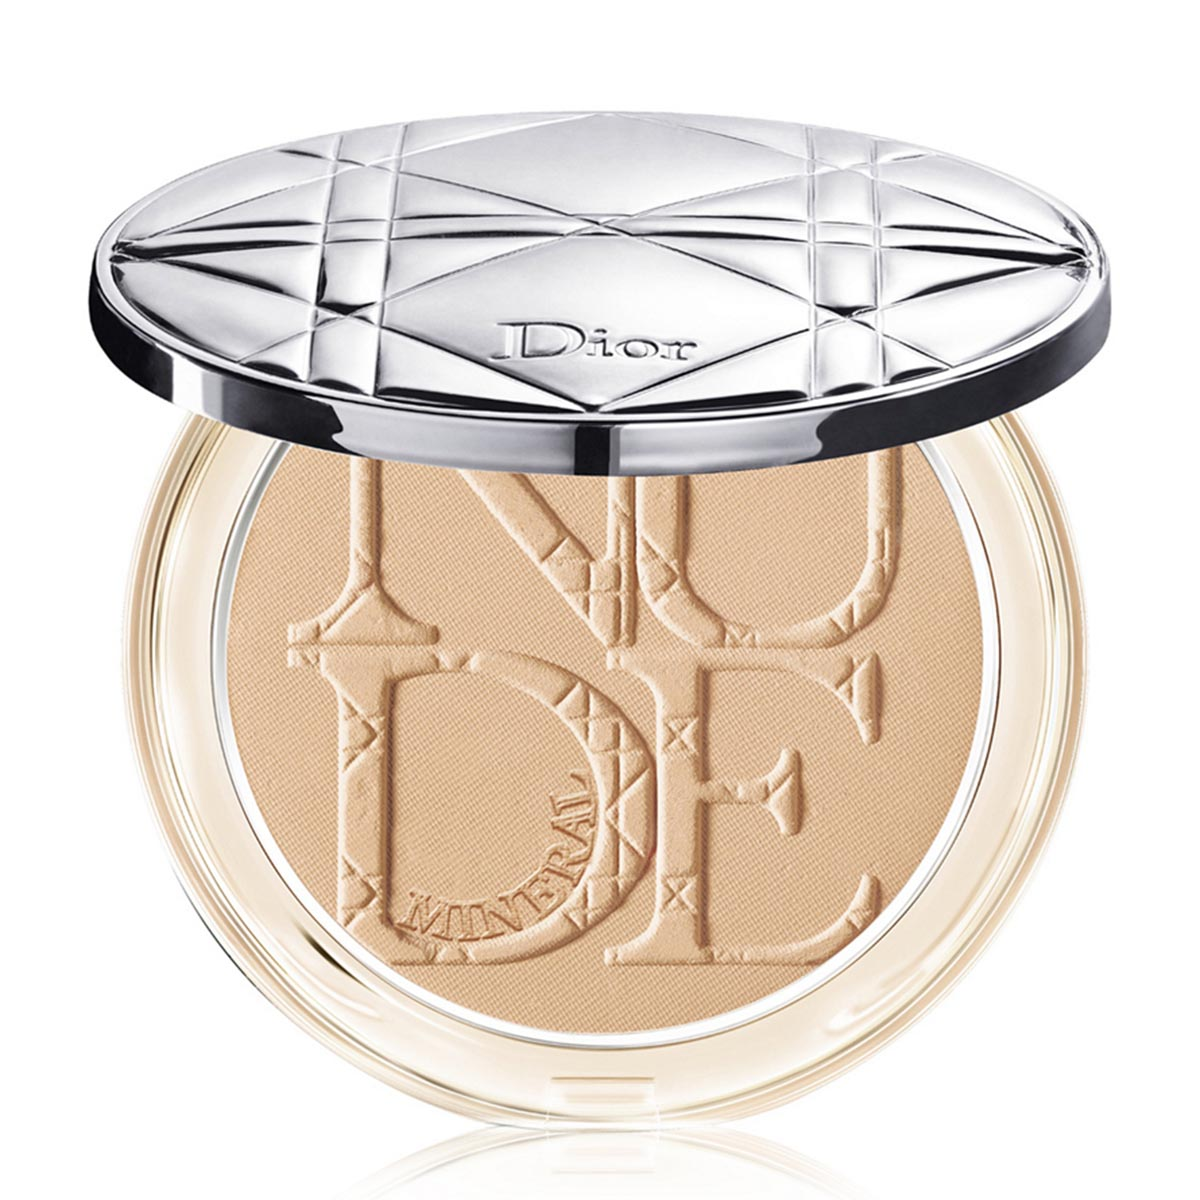 Dior diorskin mineral nude matte perfecting powder 003